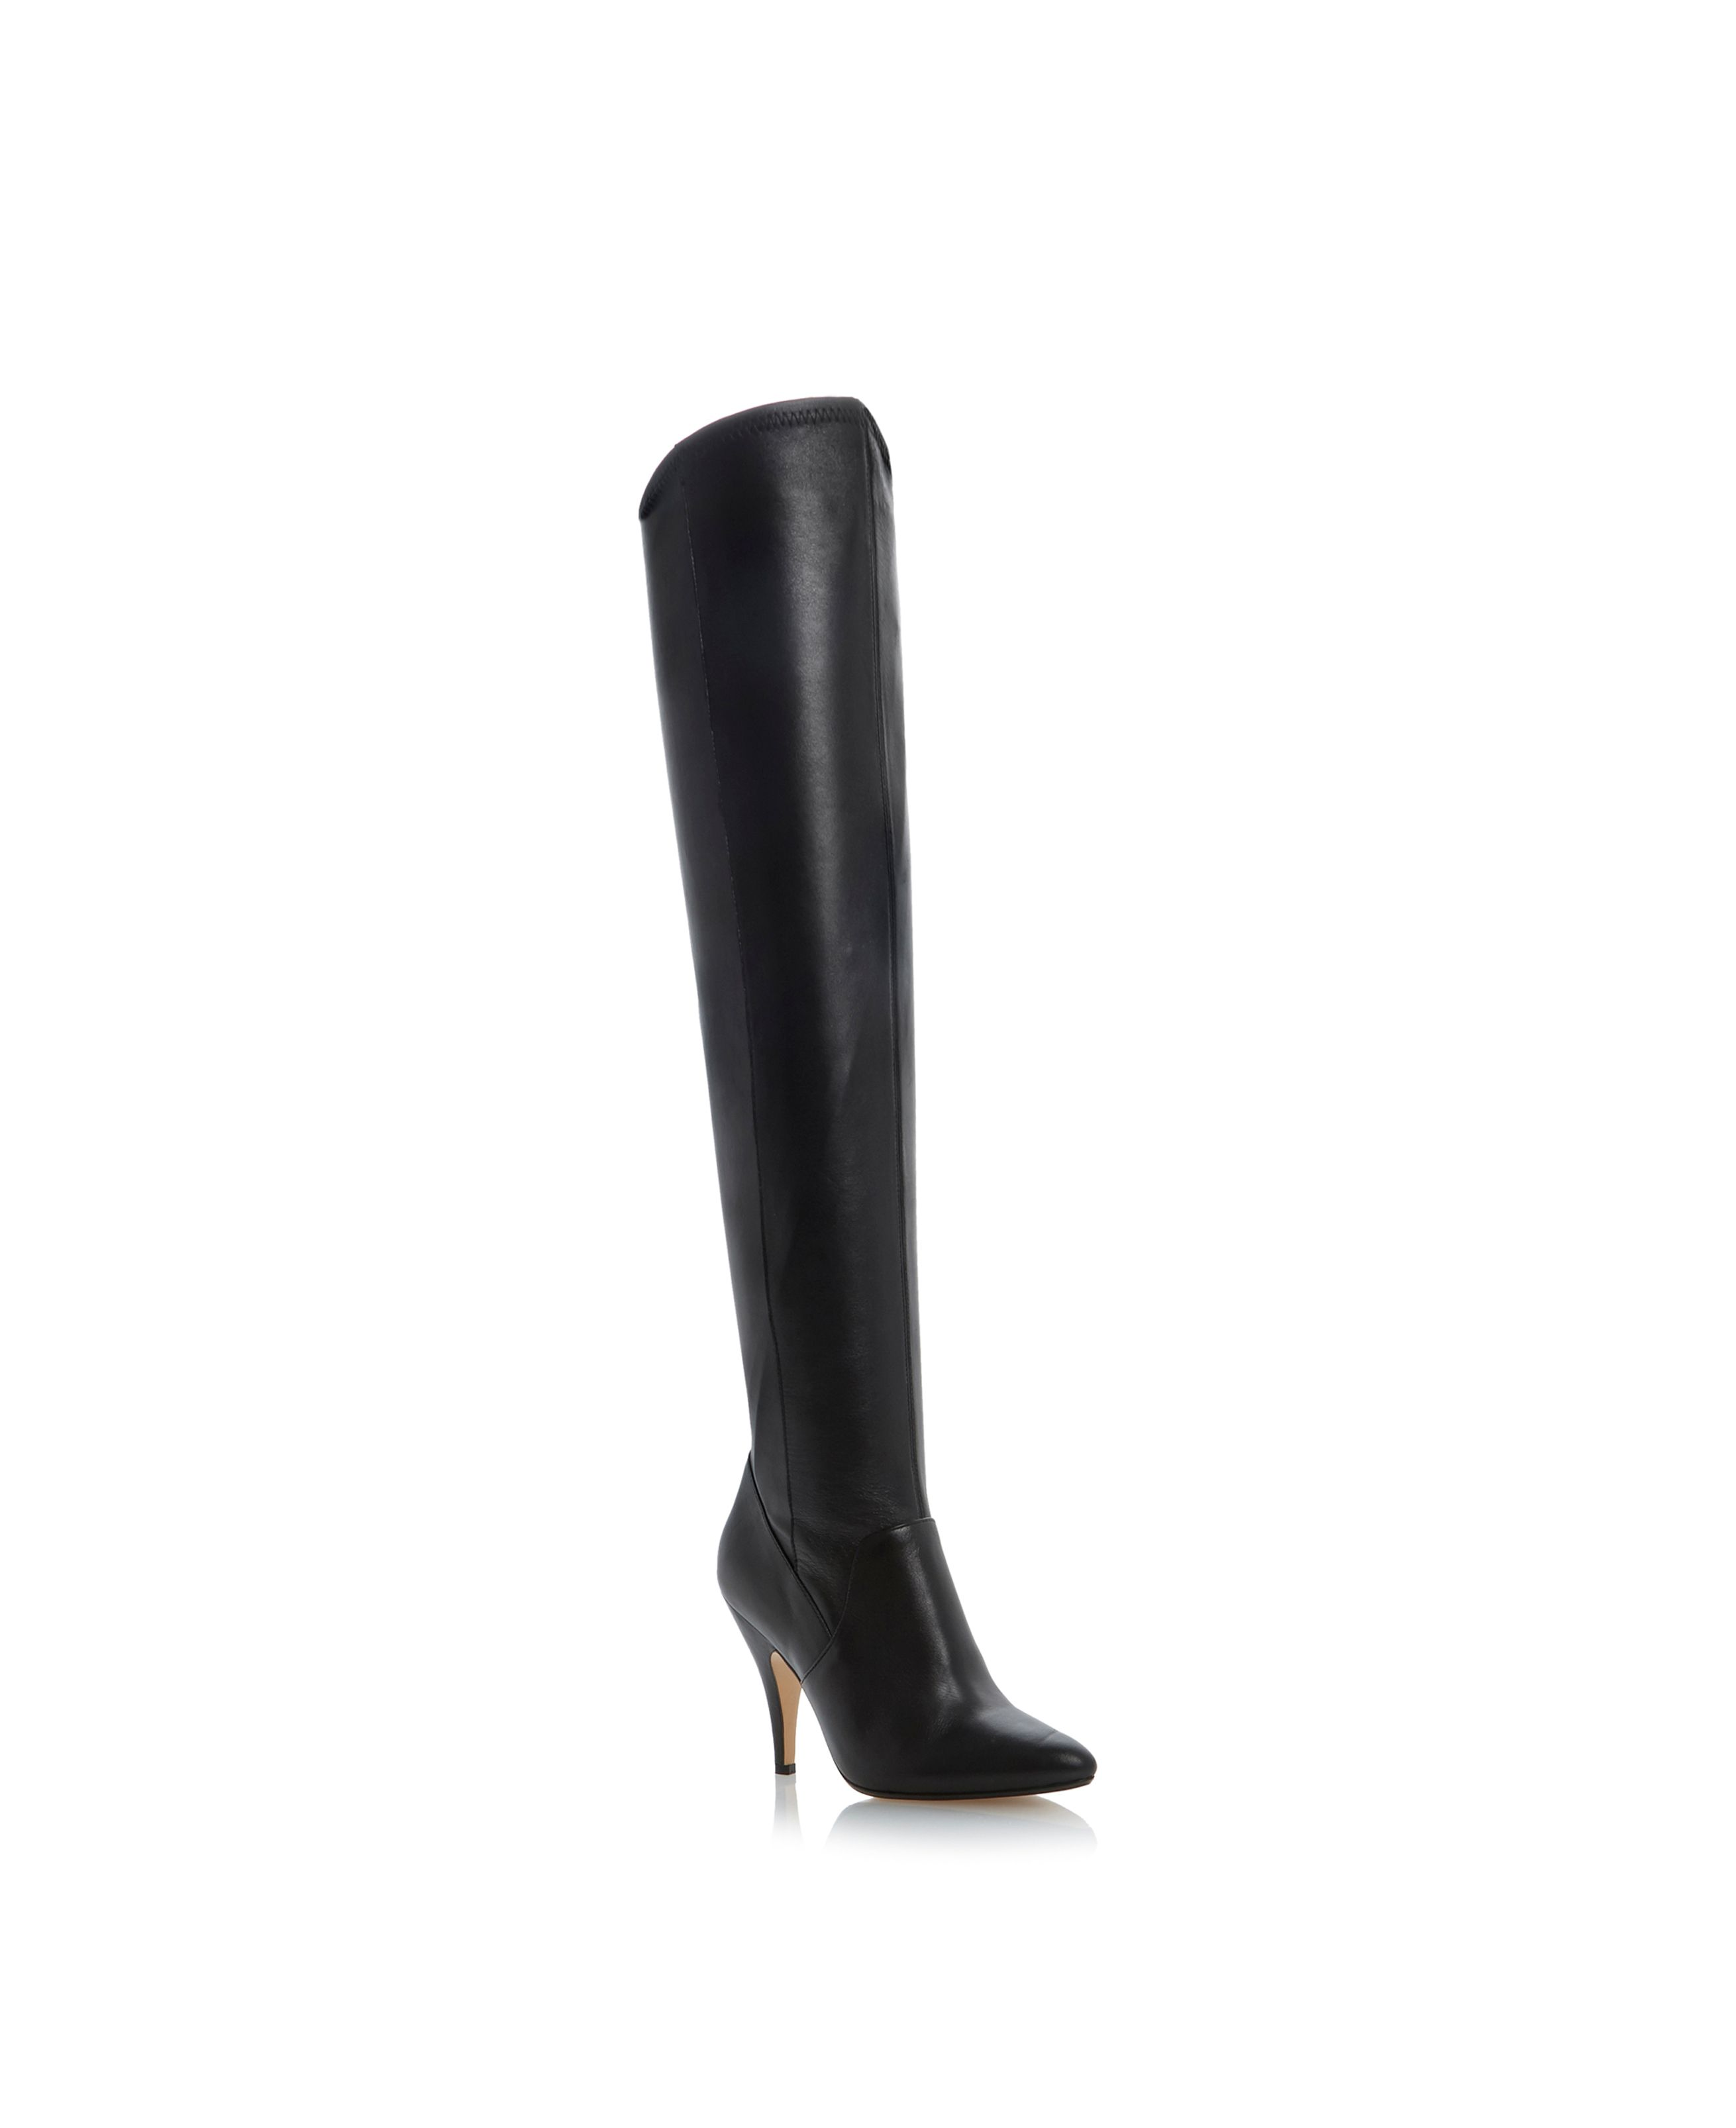 Stretchy leather round toe stiletto high boots